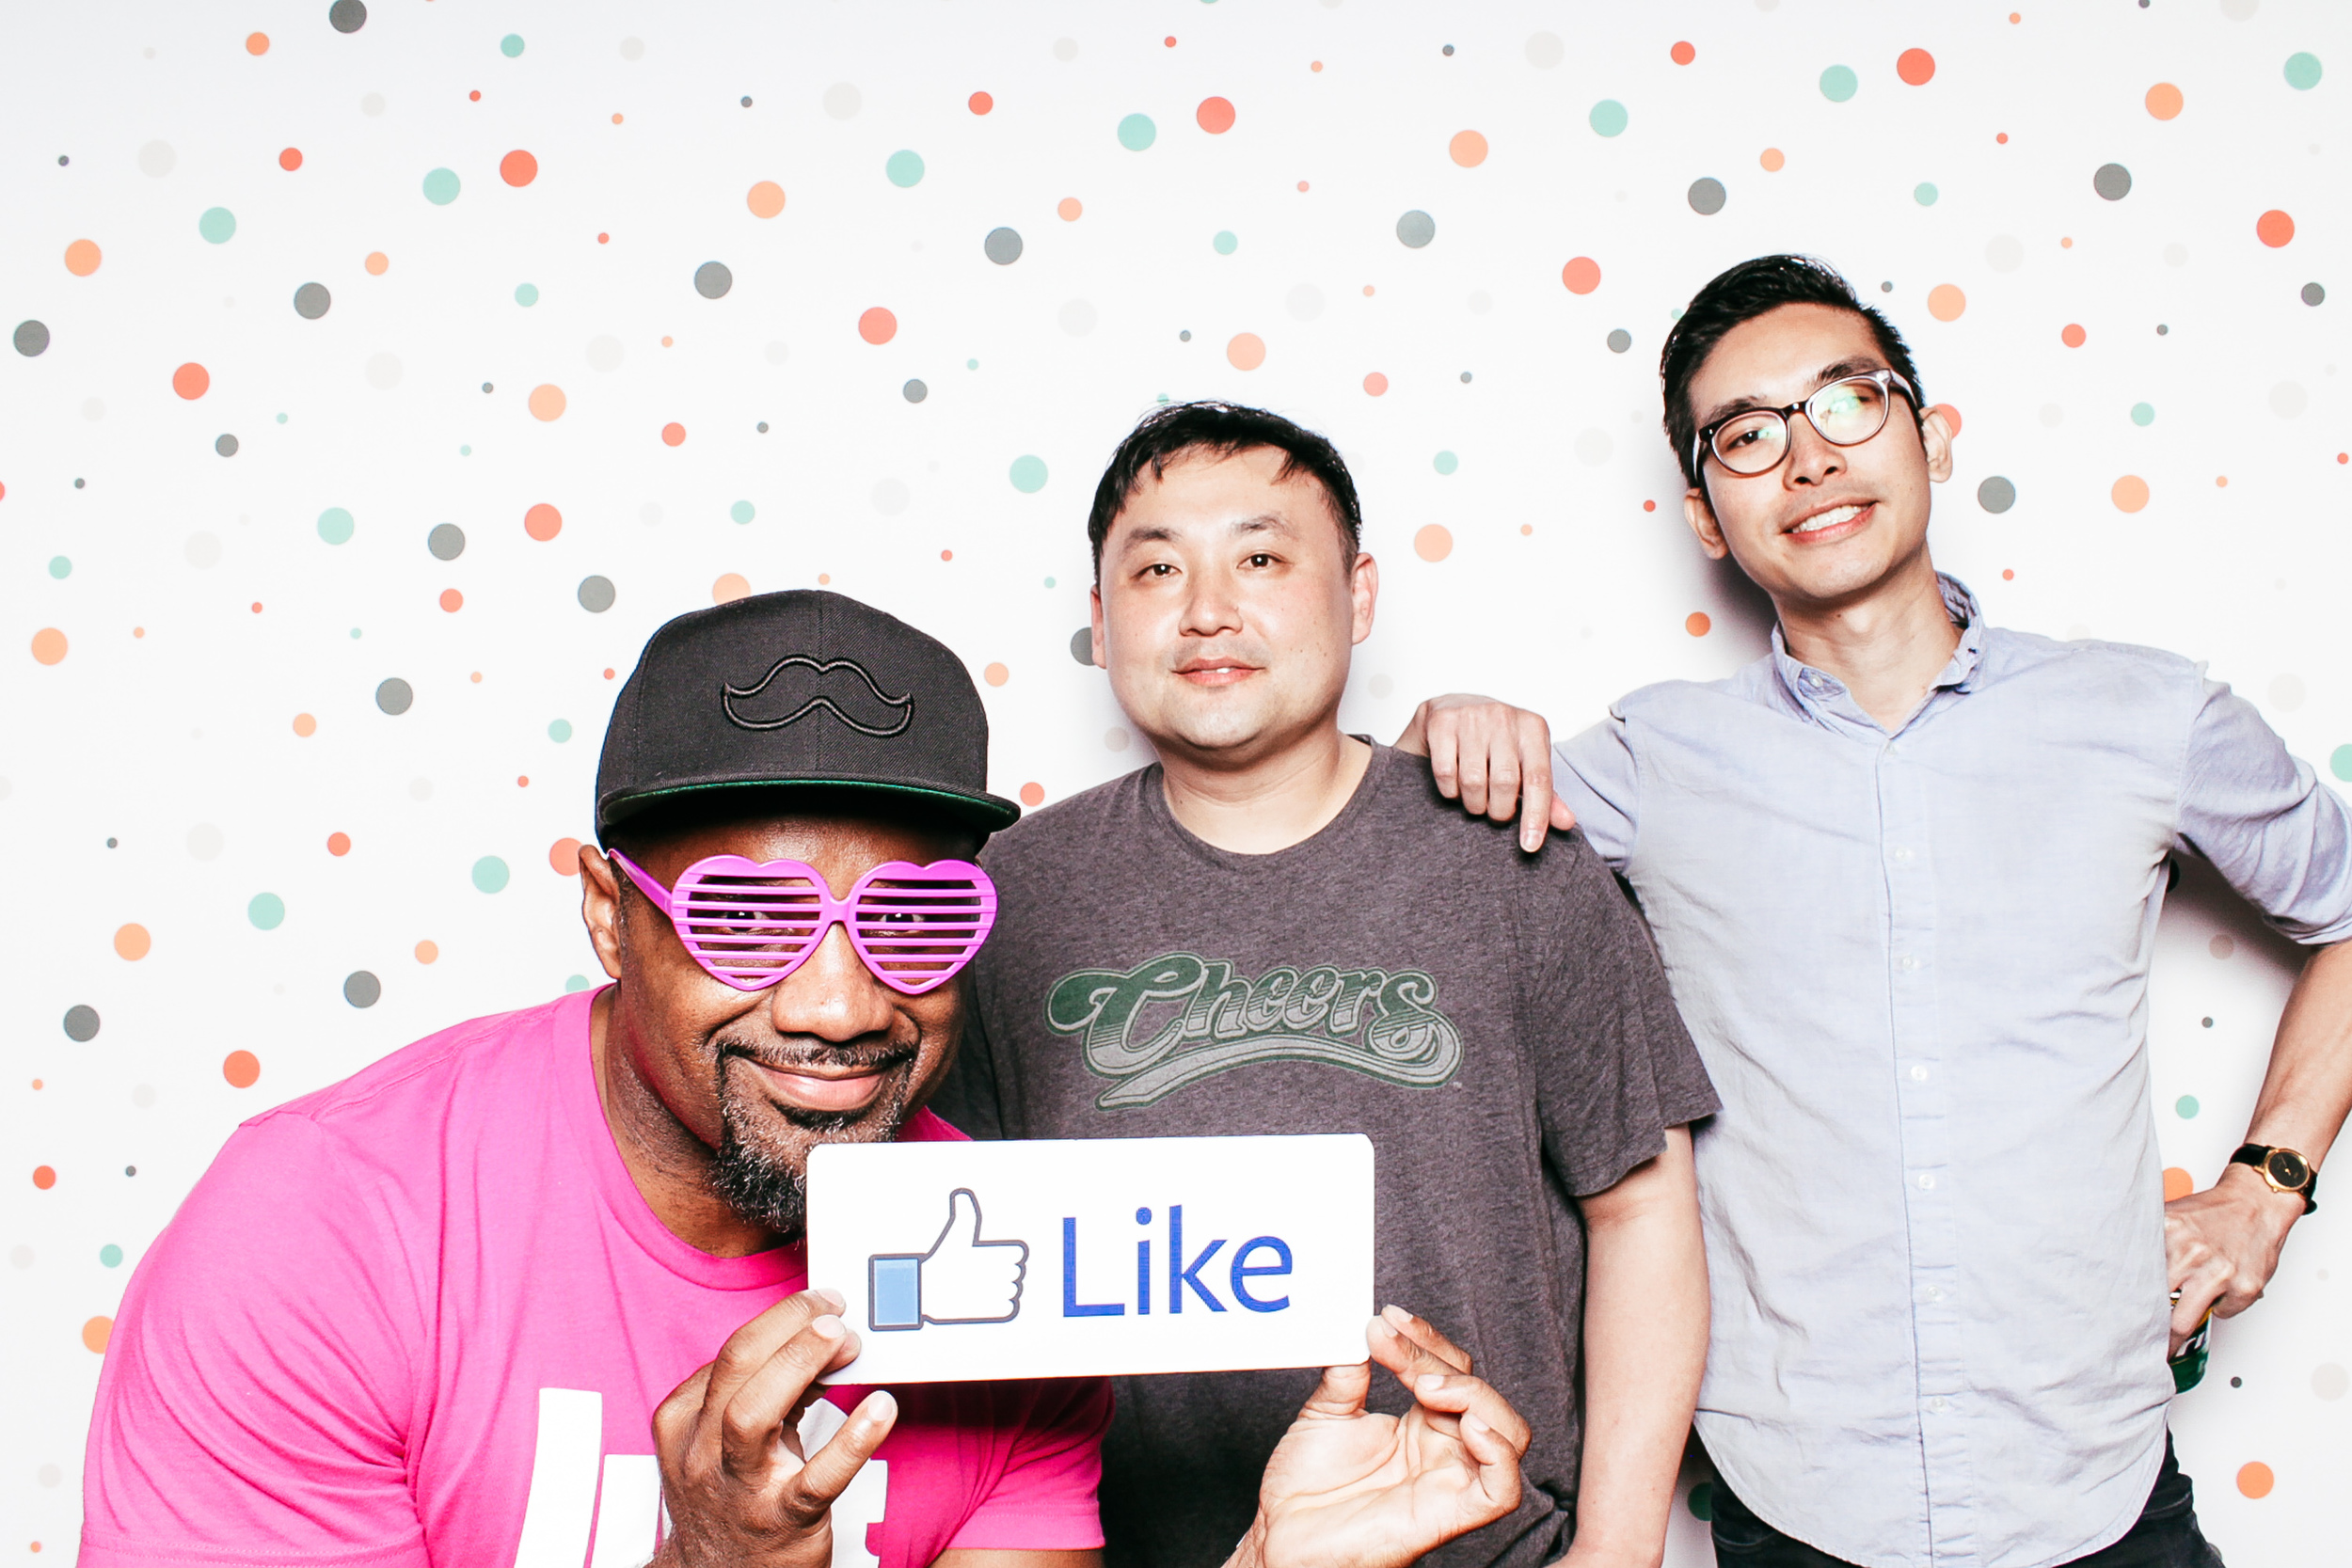 Congratulations Lamont (left) on your 10,000 rides with Lyft!